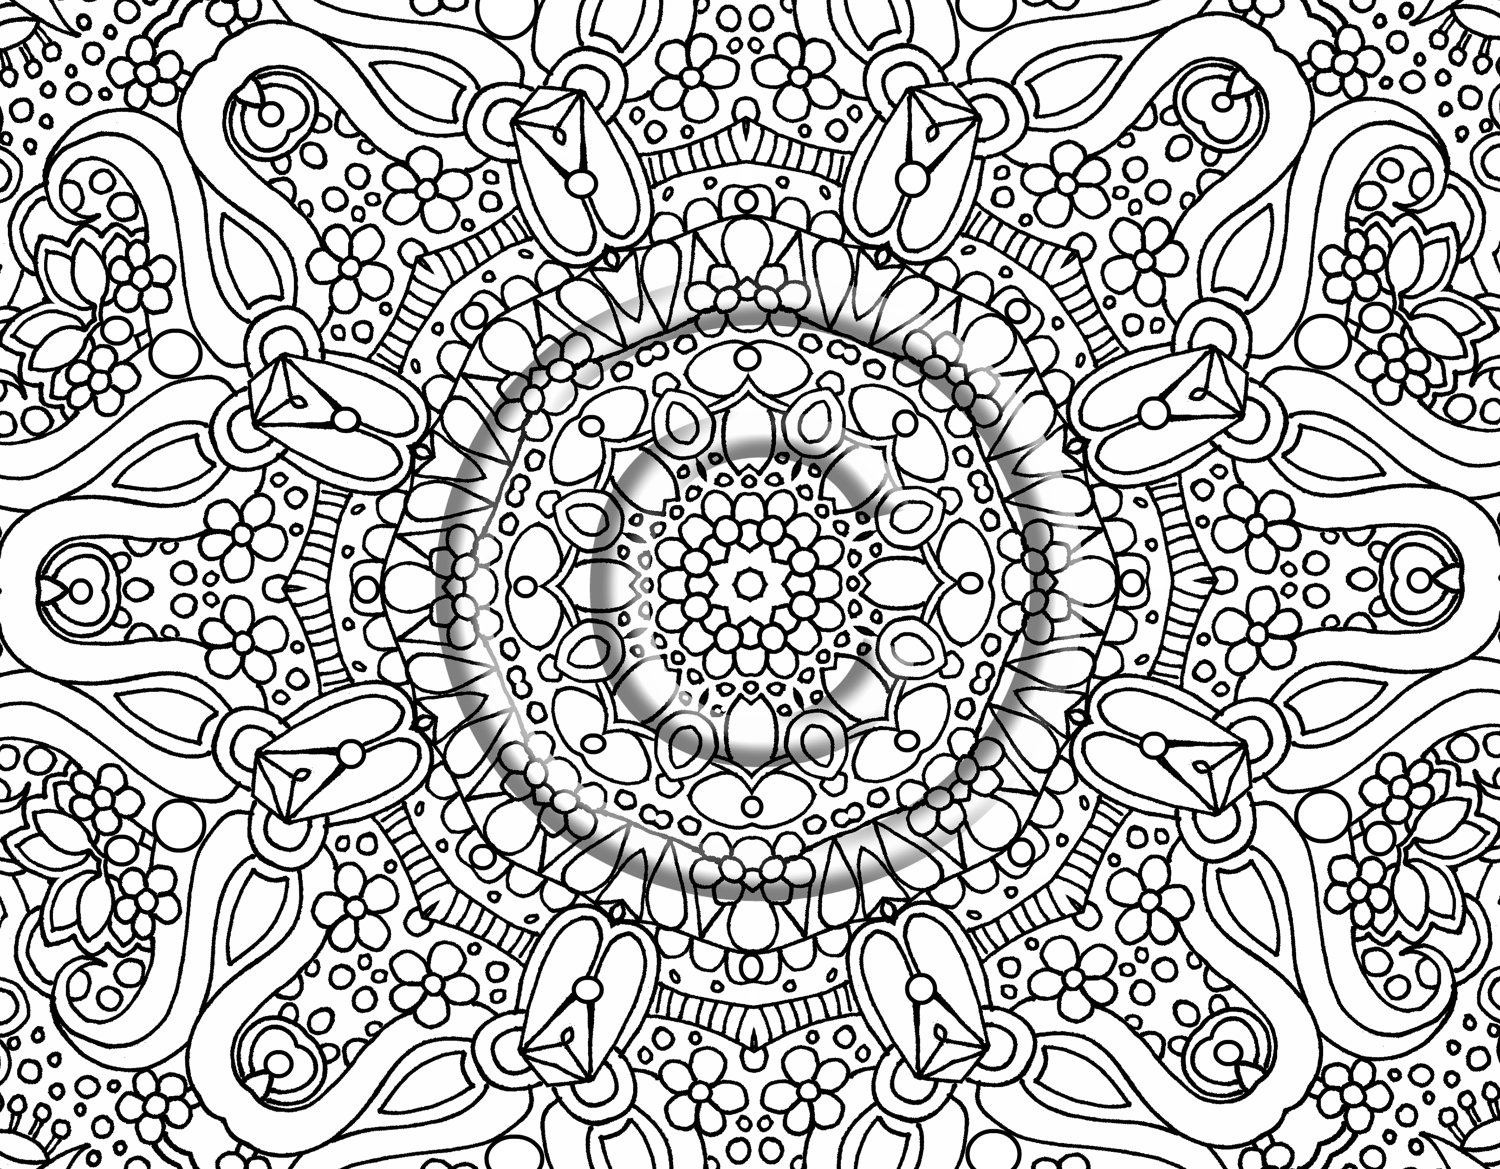 free abstract coloring pages get this printable abstract coloring pages online 42671 abstract pages coloring free